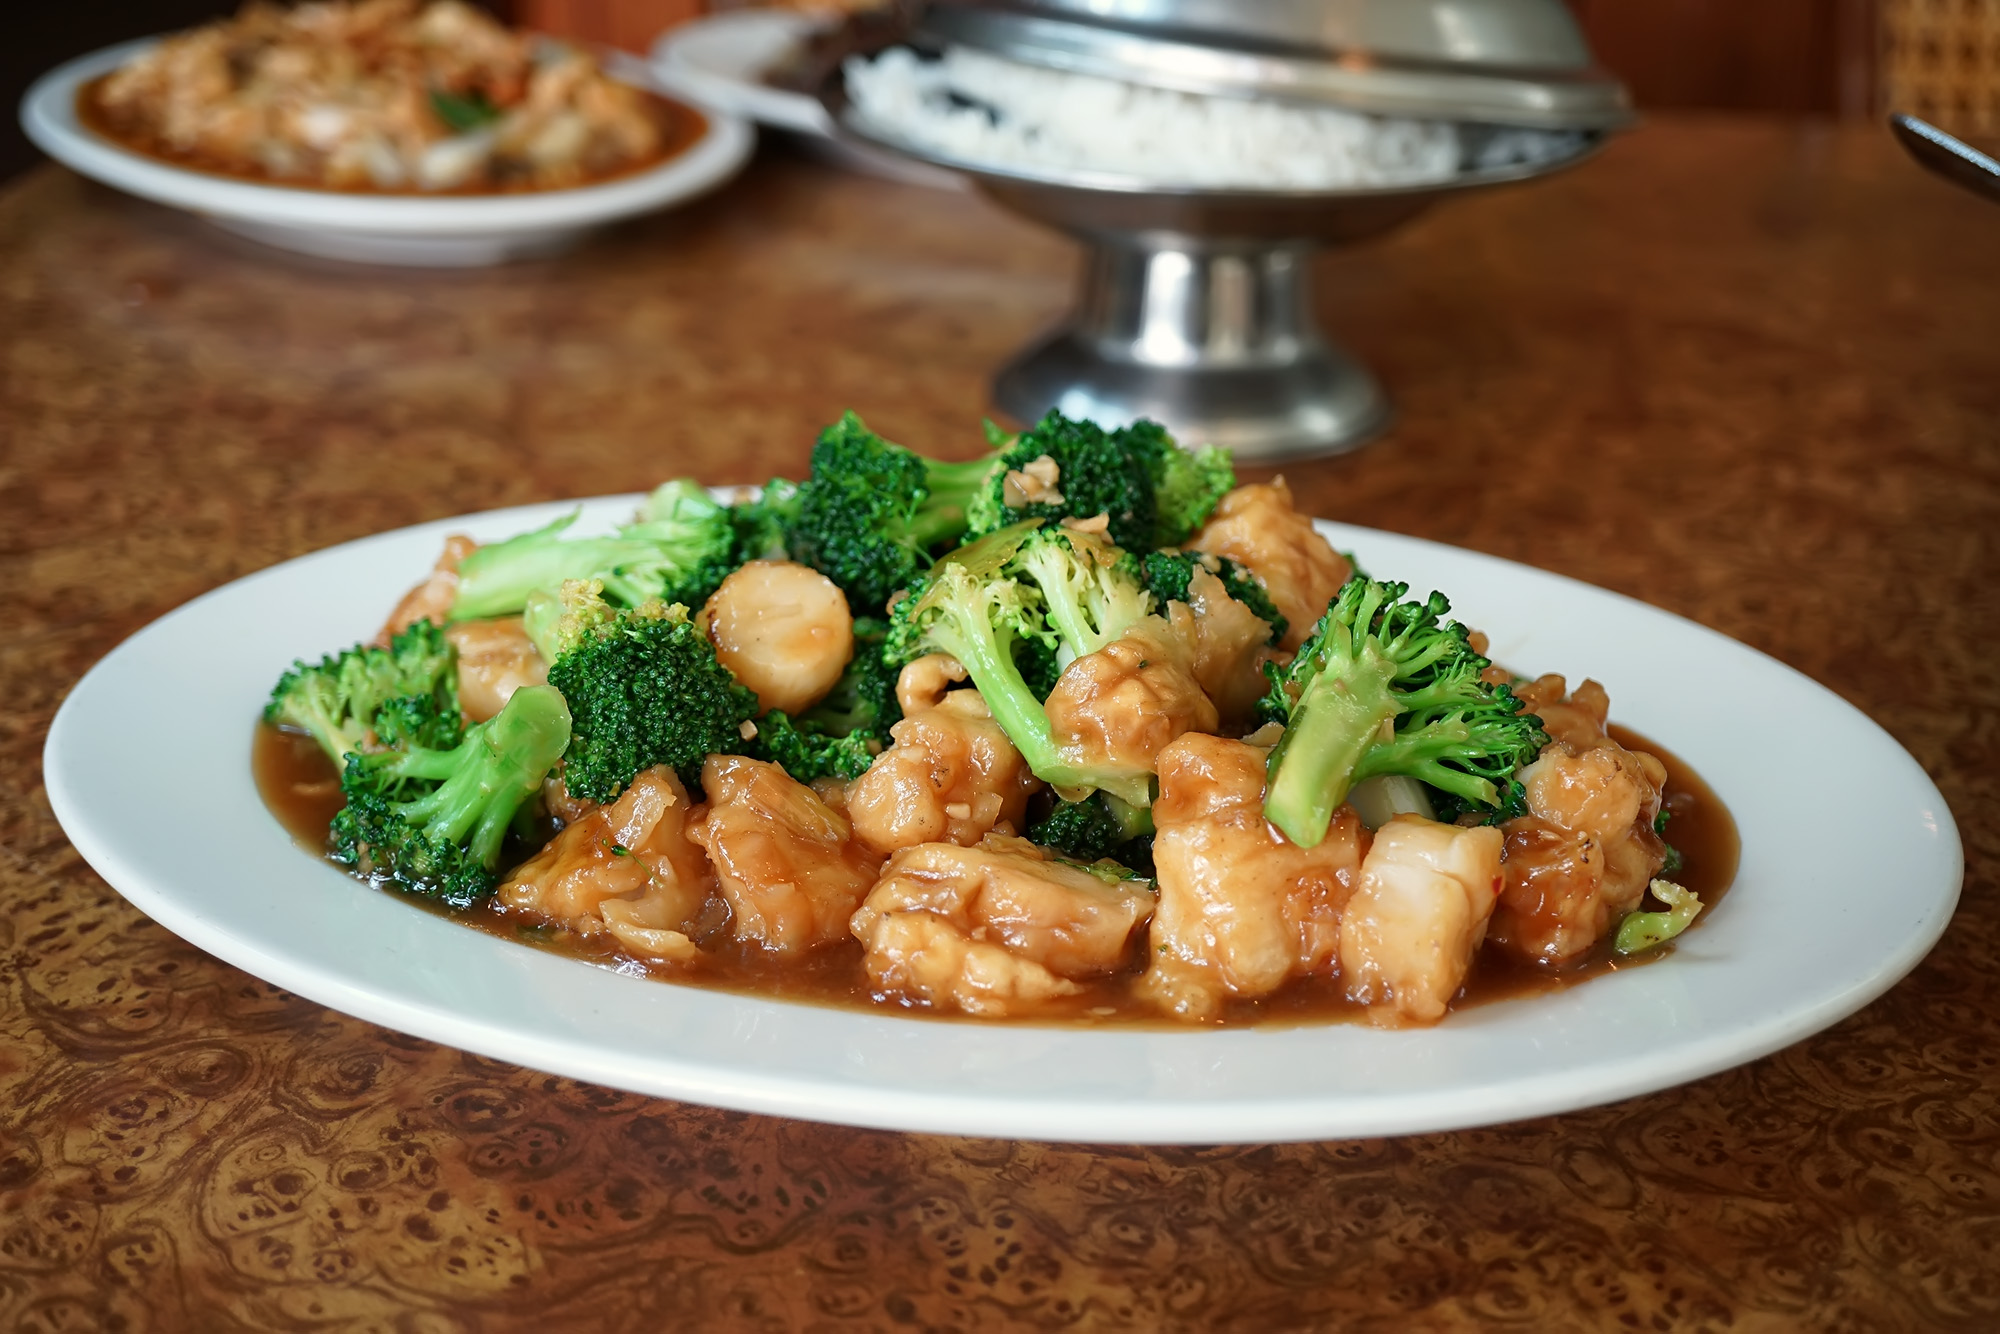 Scallops with Broccoli